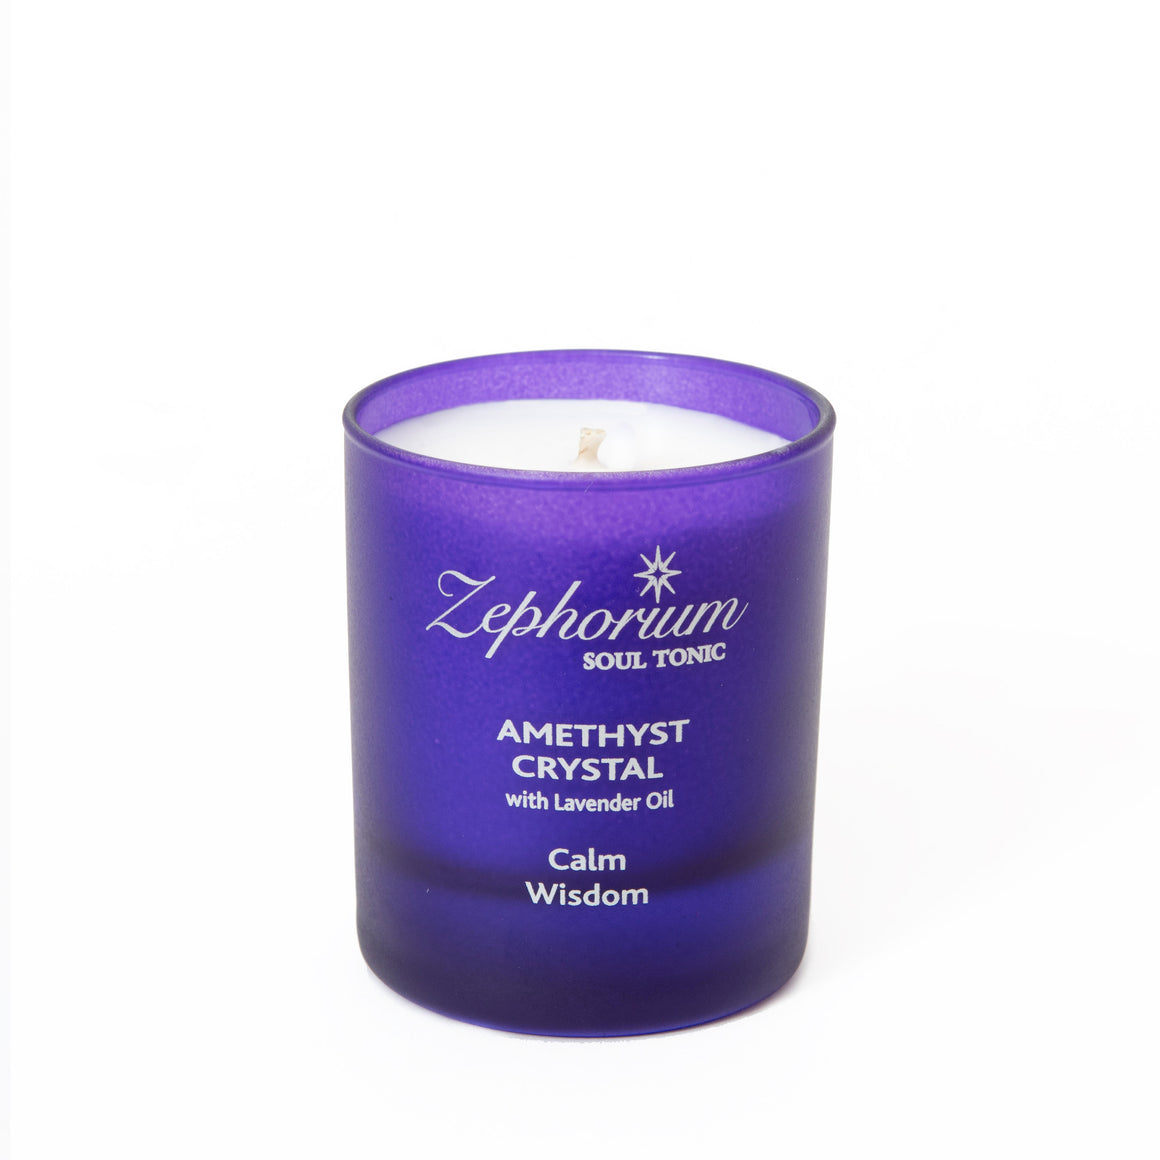 Calm & Wisdom with Lavender Oil Affirmation Candle